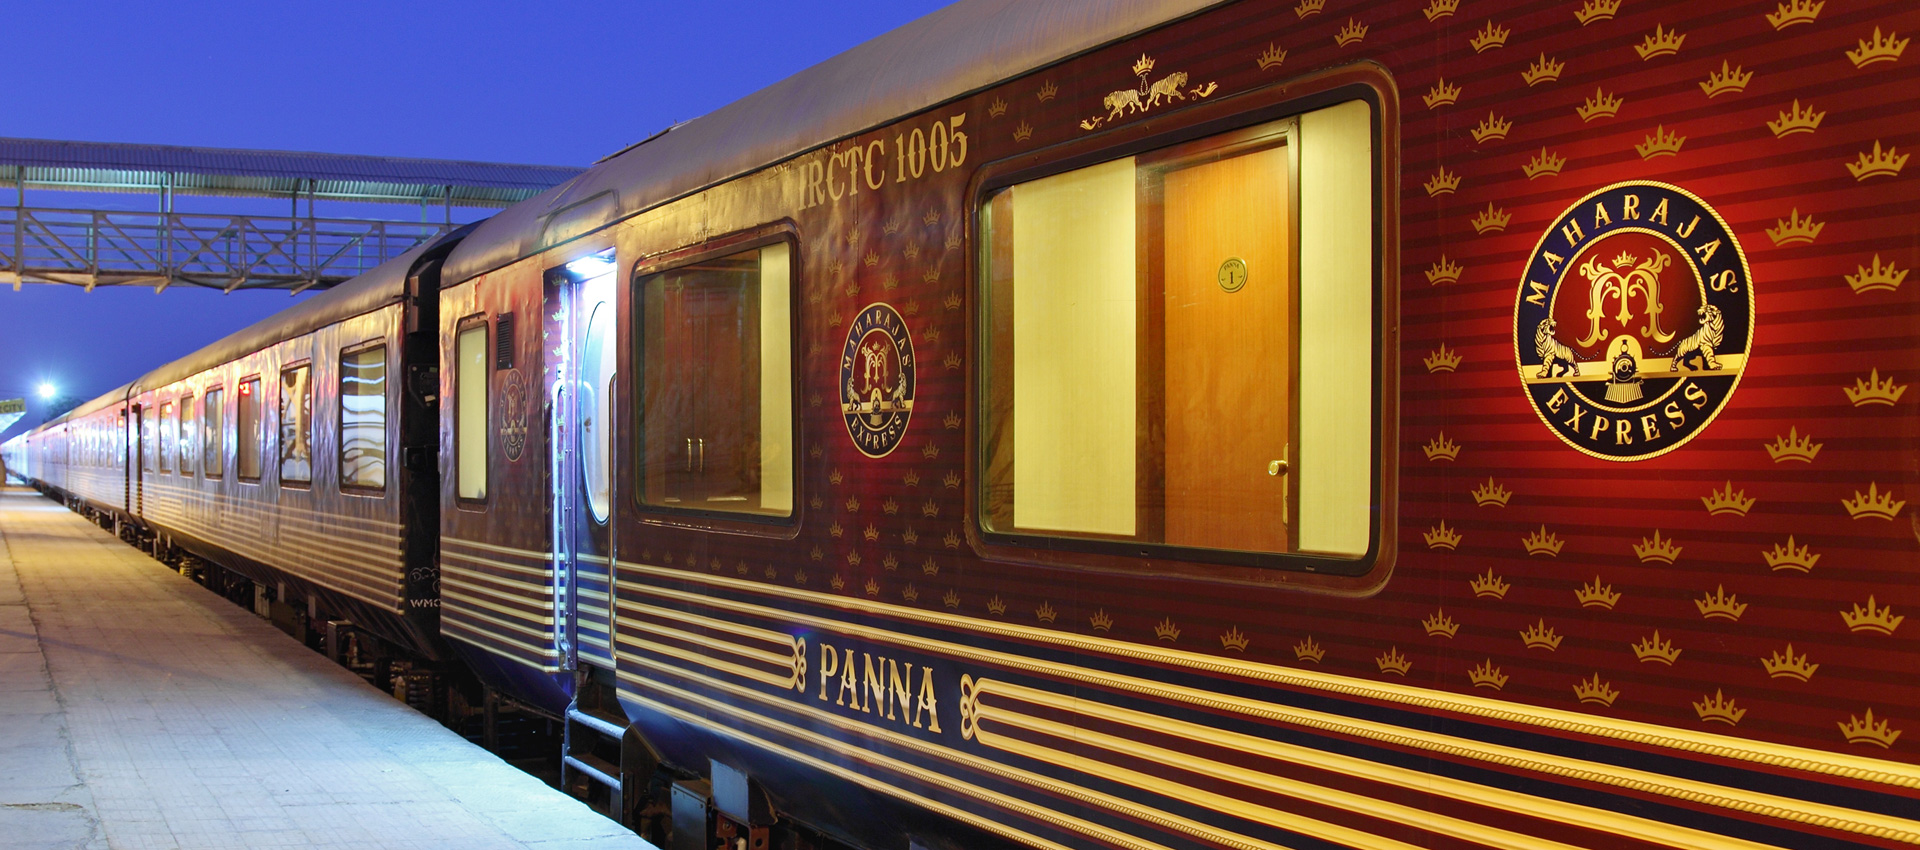 10 Fascinating Facts About The Maharajas' Express In India | The Maharajas' Express at a station